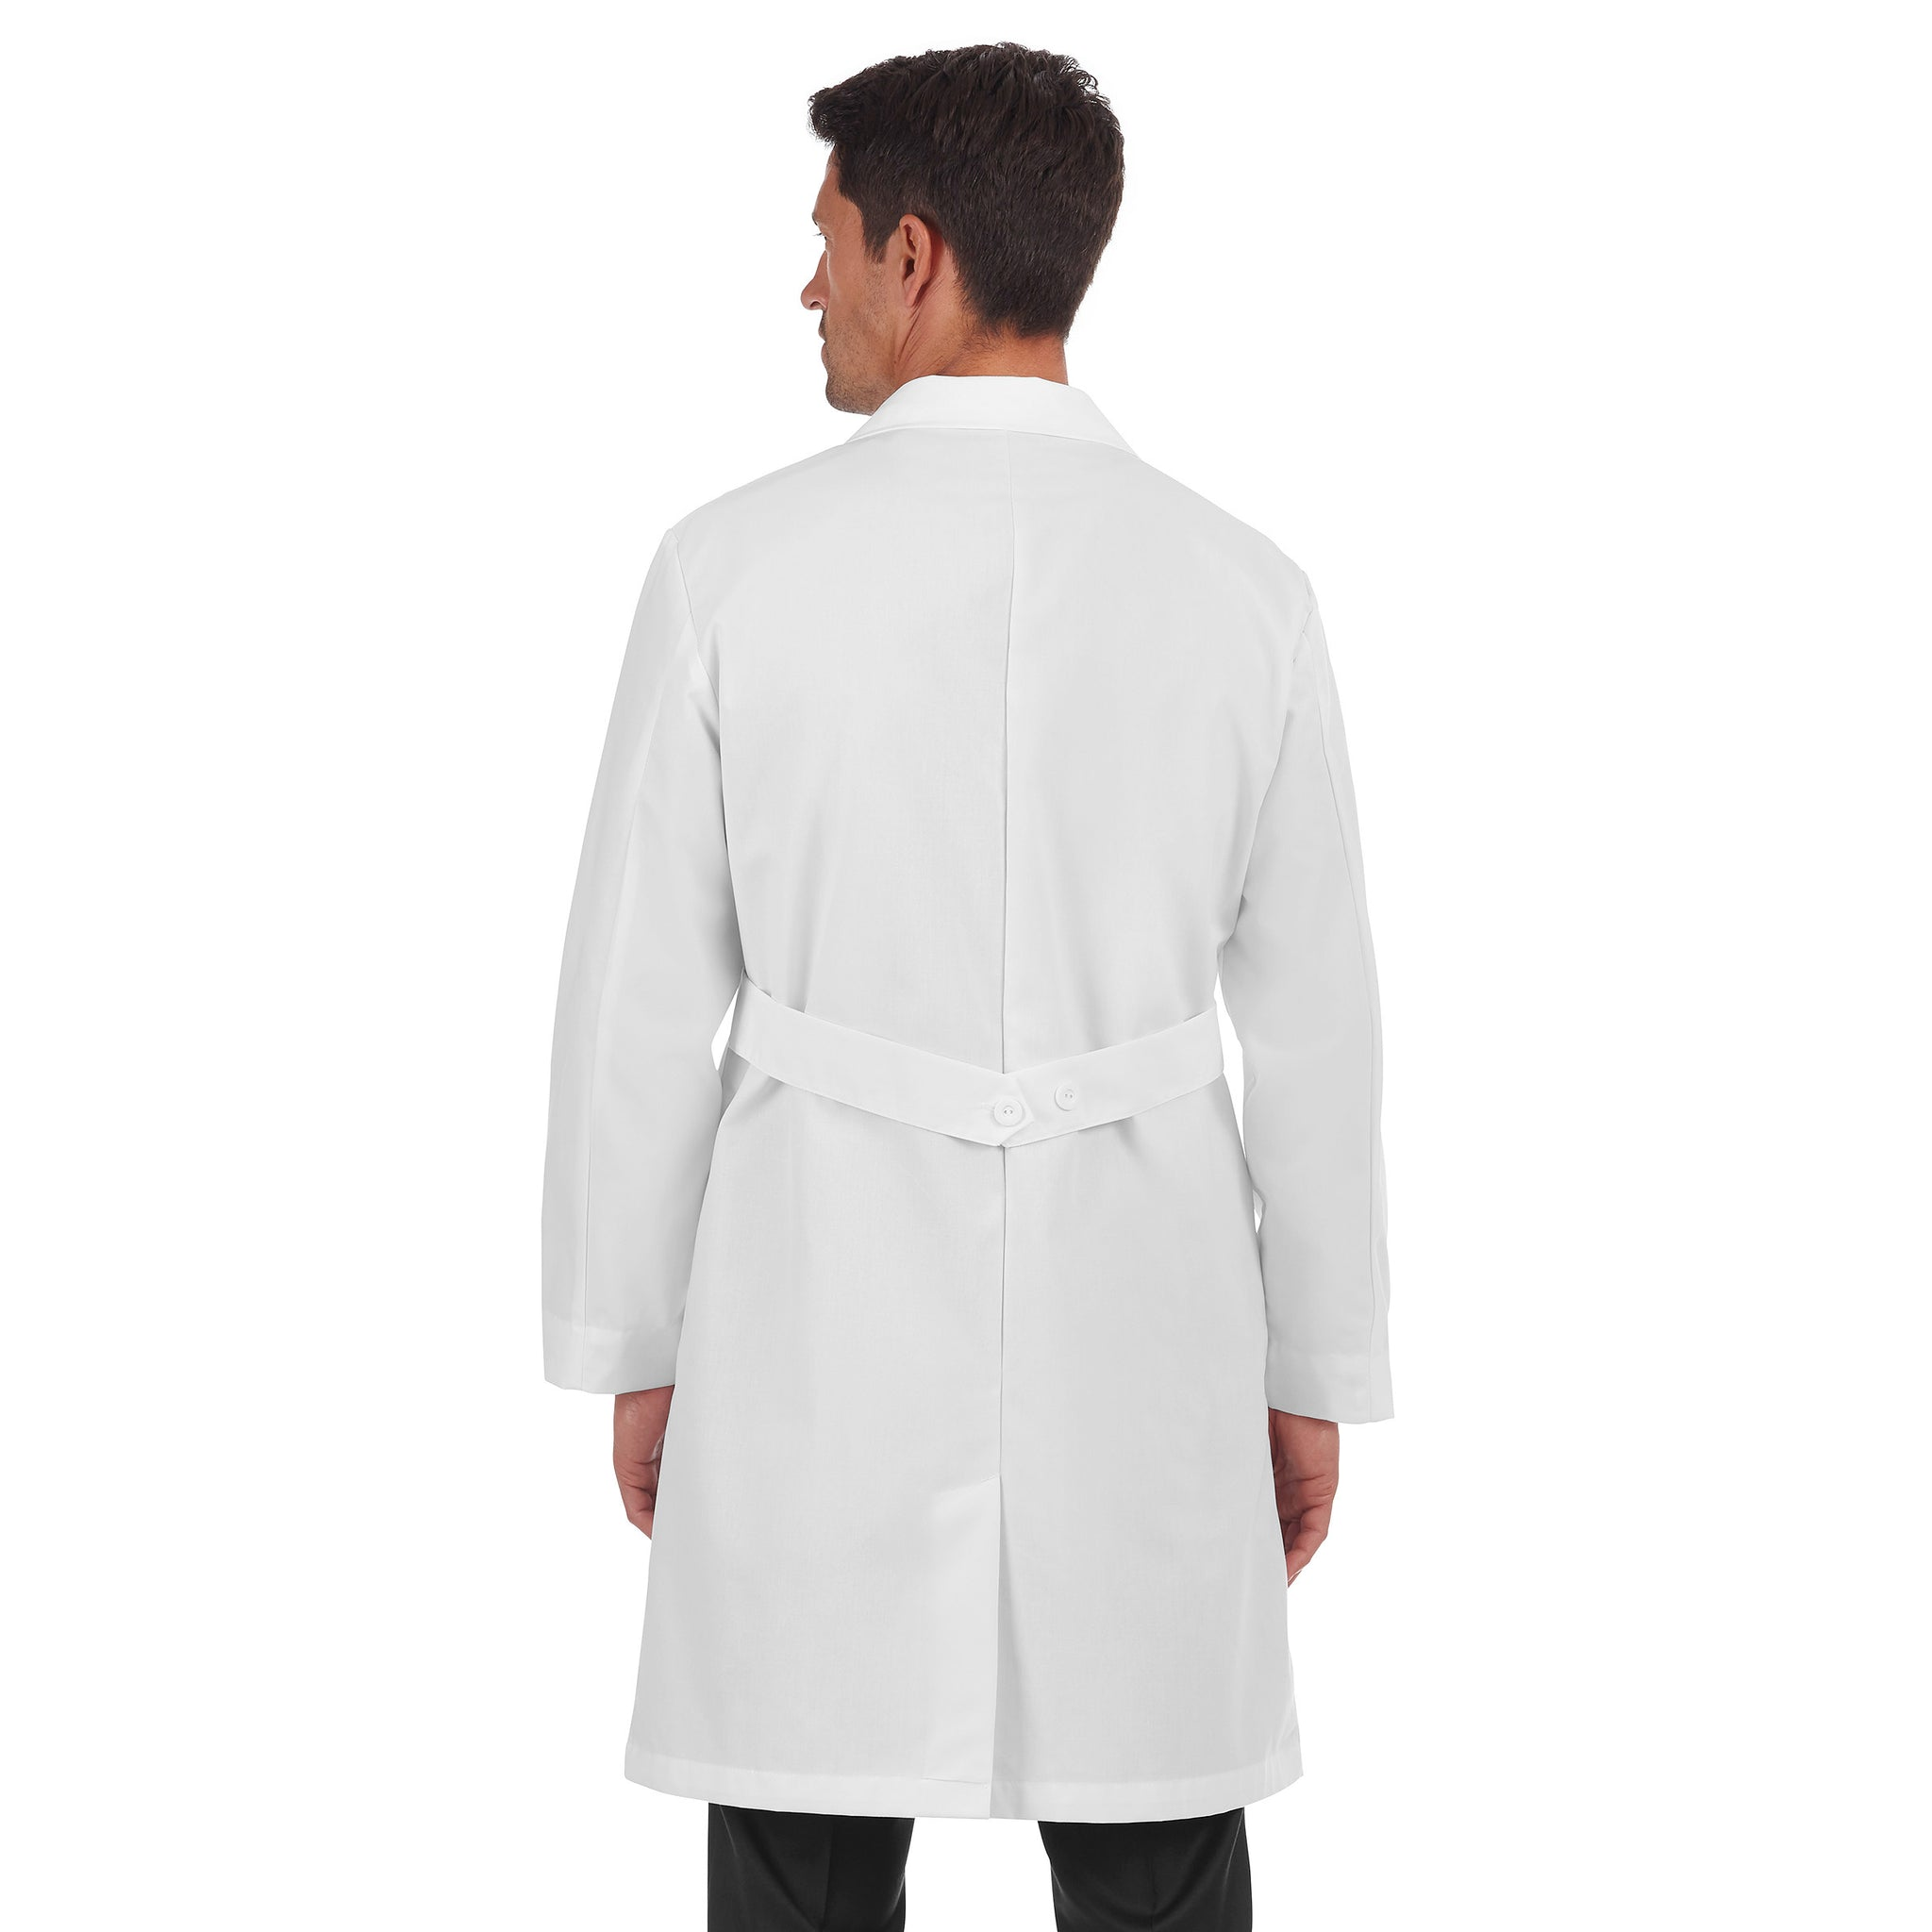 "Meta 40"" Men's 5 Pocket Lab Coat 267"